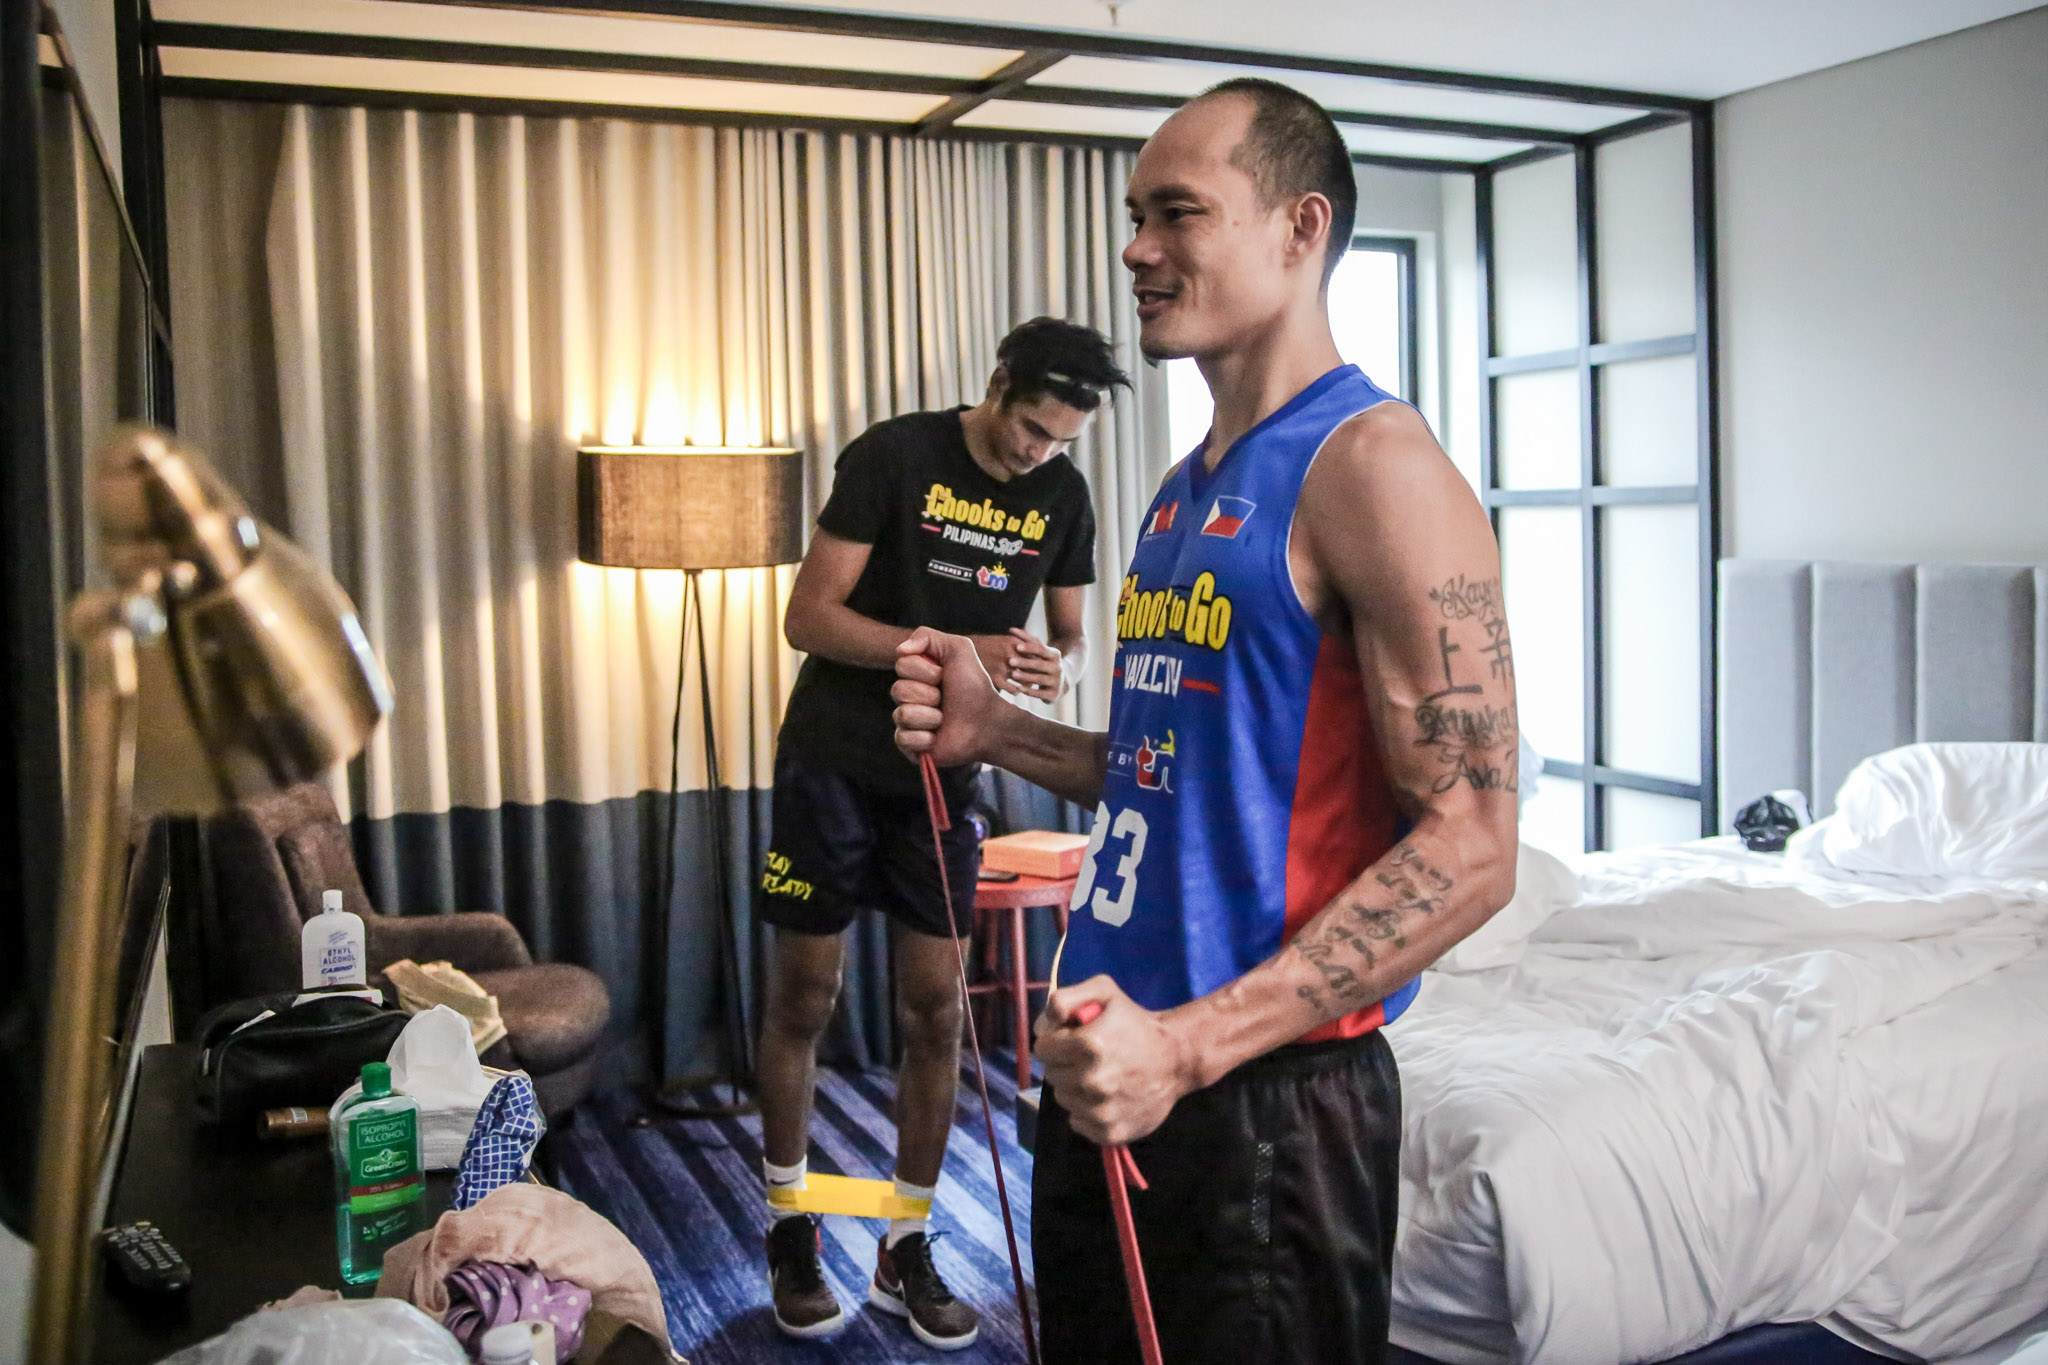 2021-FIBA-3X3-Montreal-WT-Prep-Dennis-Santos-x-Mark-Yee Manila Chooks look to make up lack of height with prep, chemistry in Montreal WT 3x3 Basketball Chooks-to-Go Pilipinas 3x3 News  - philippine sports news